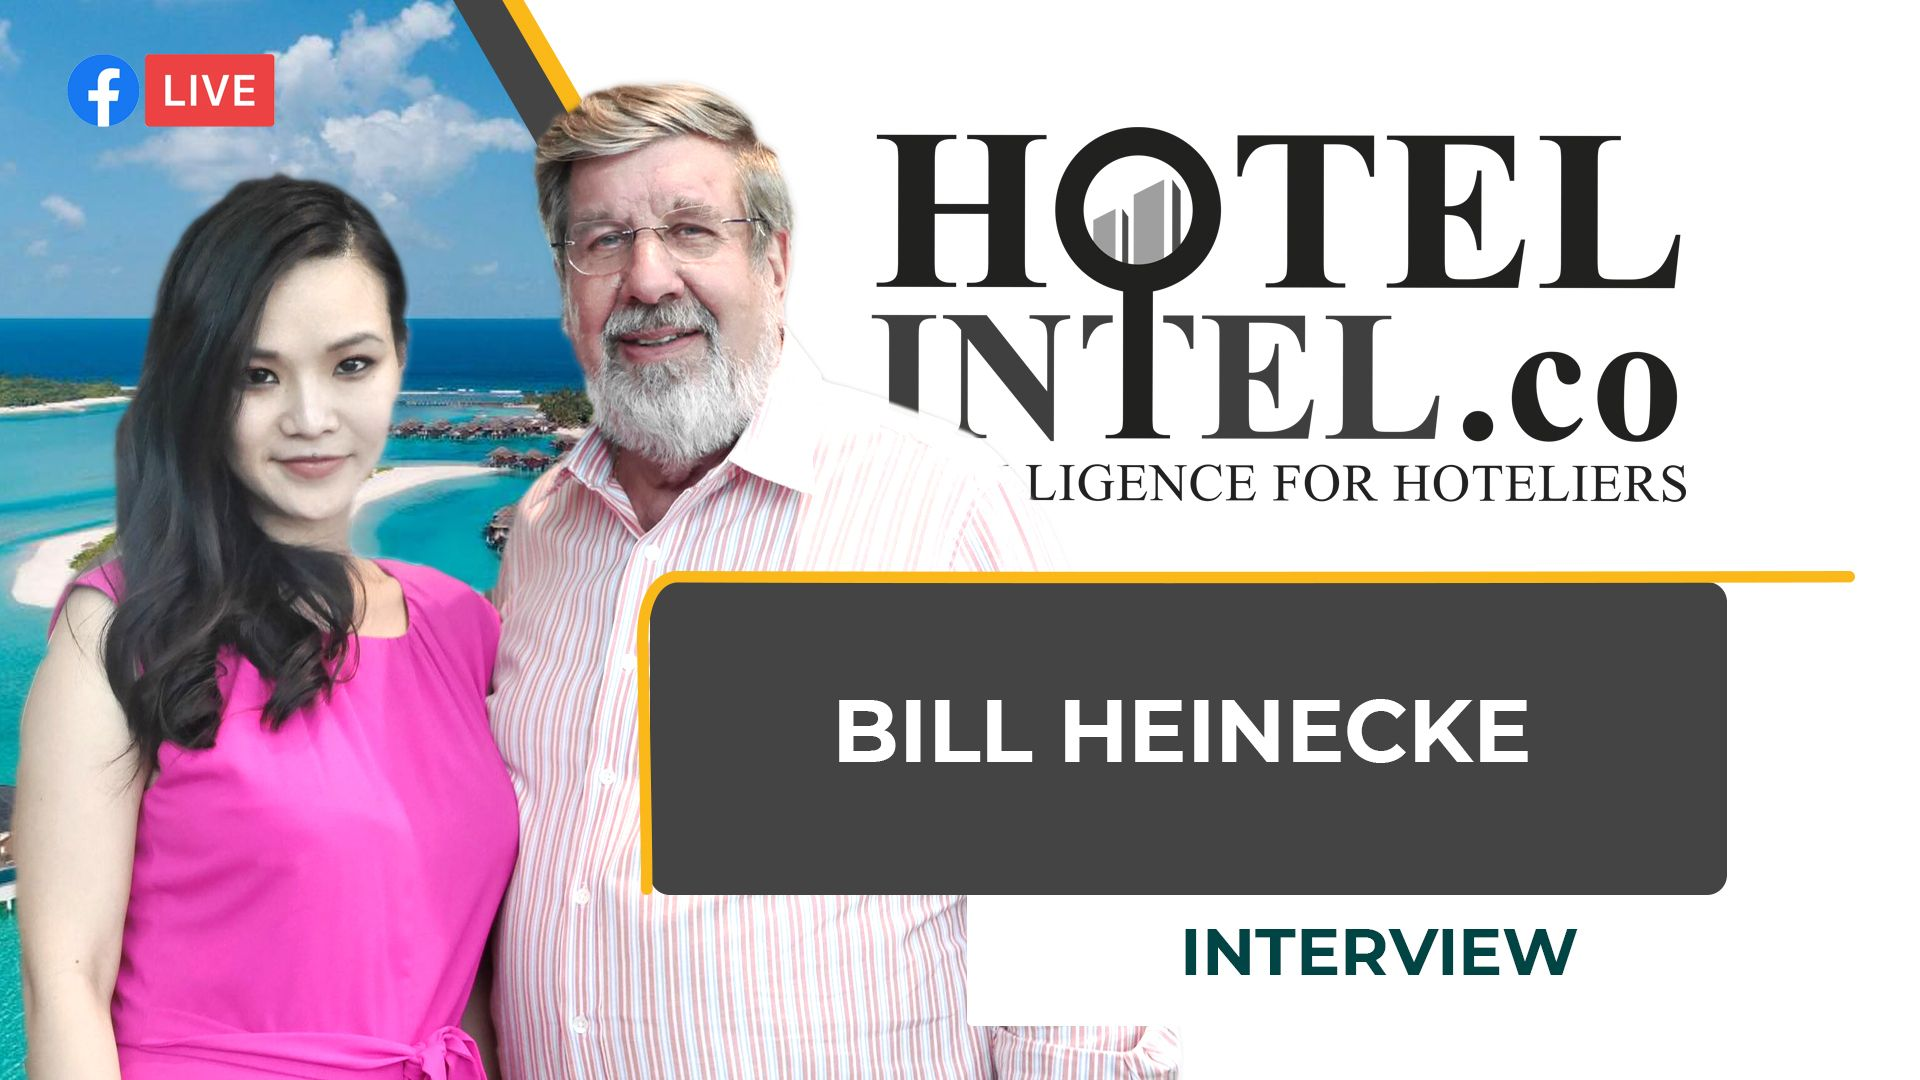 Billionaire Hotel Mogul  Bill Heinecke Hotelintel.co Interview